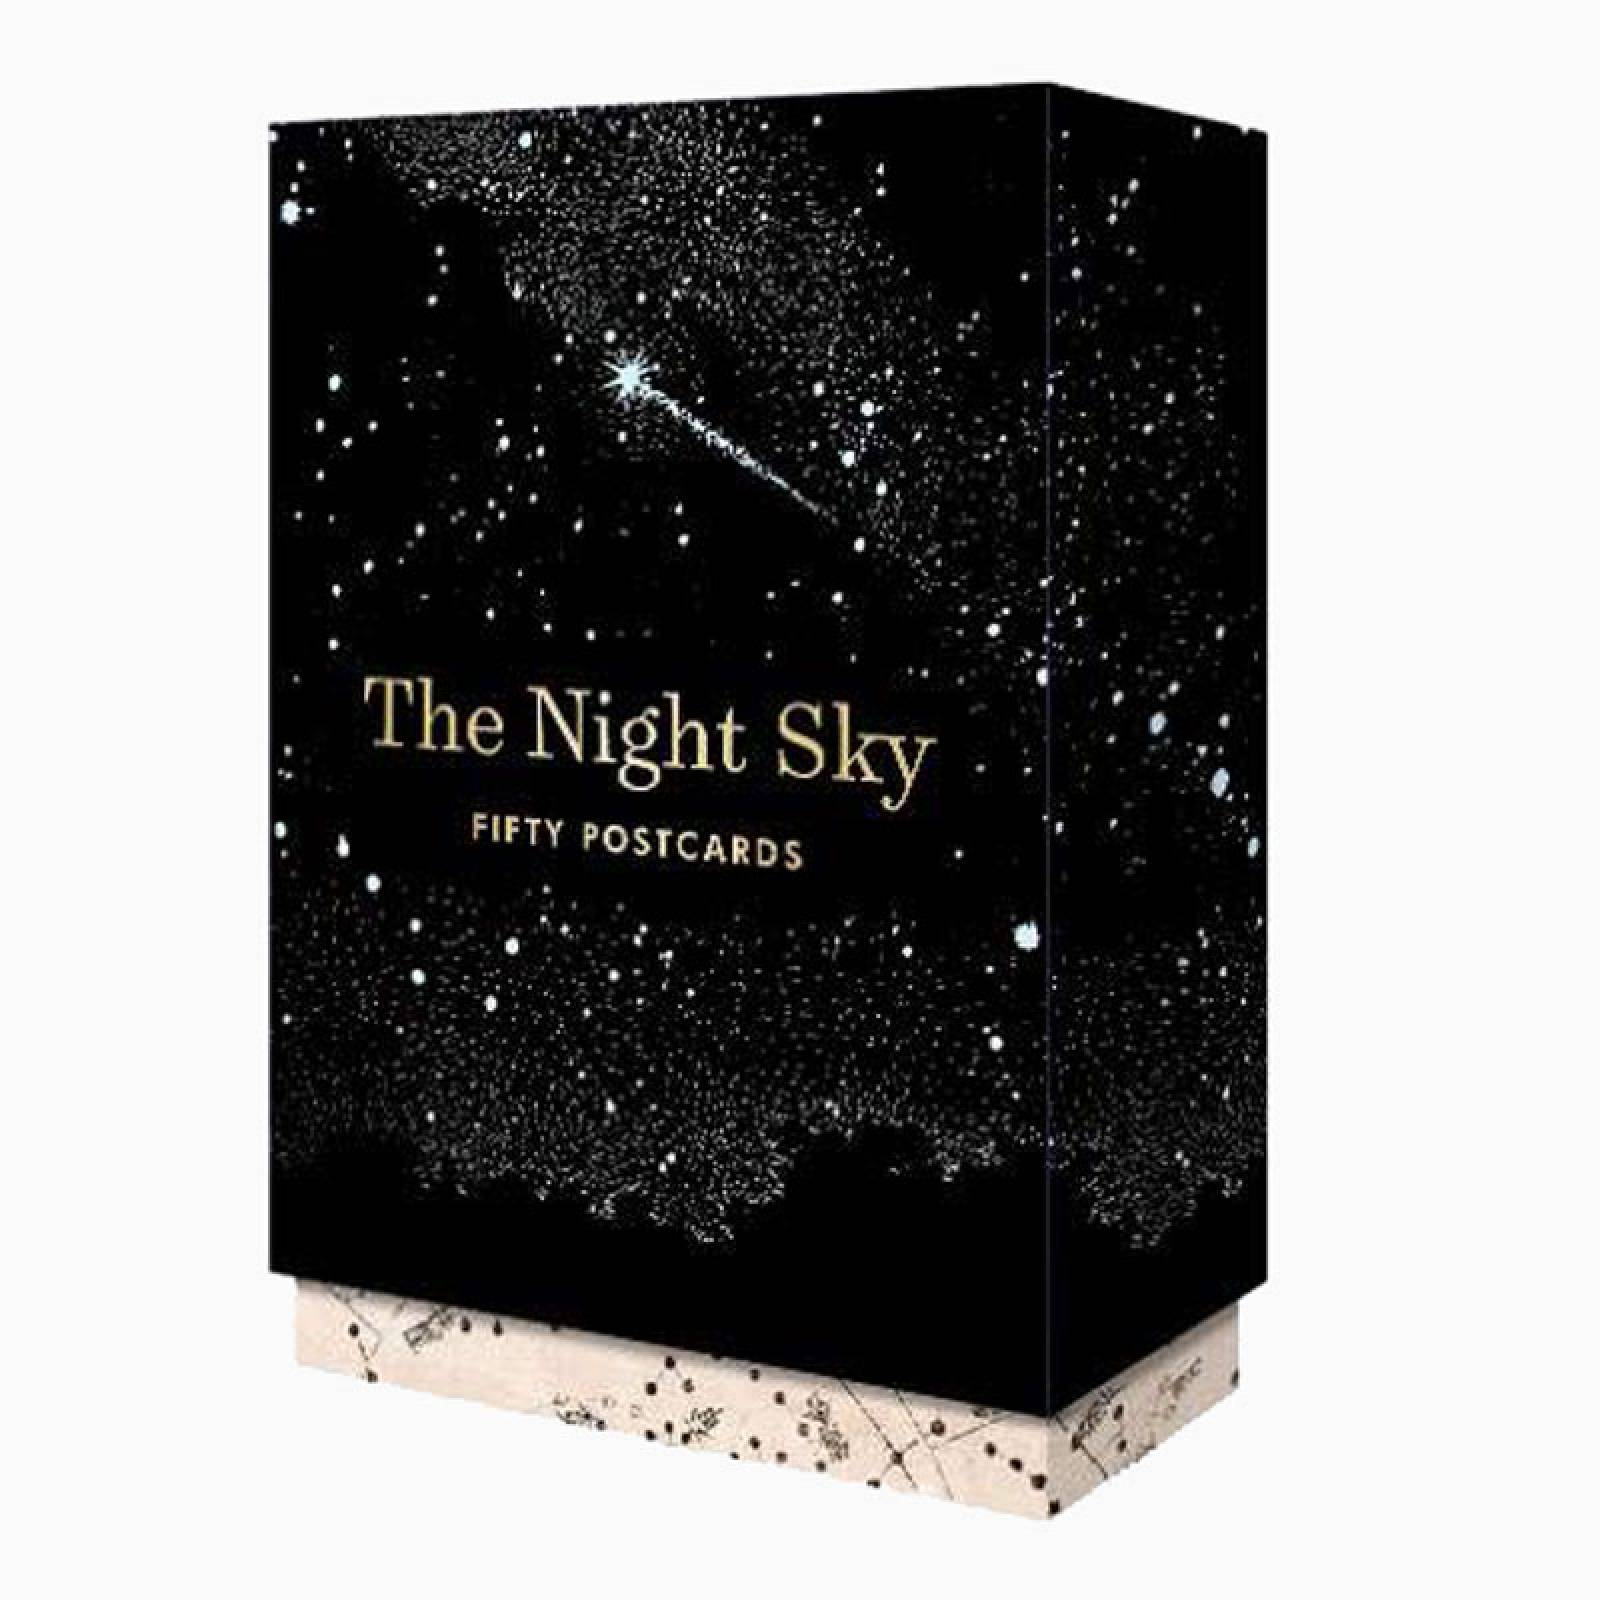 The Night Sky: Box Set Of 50 Postcards